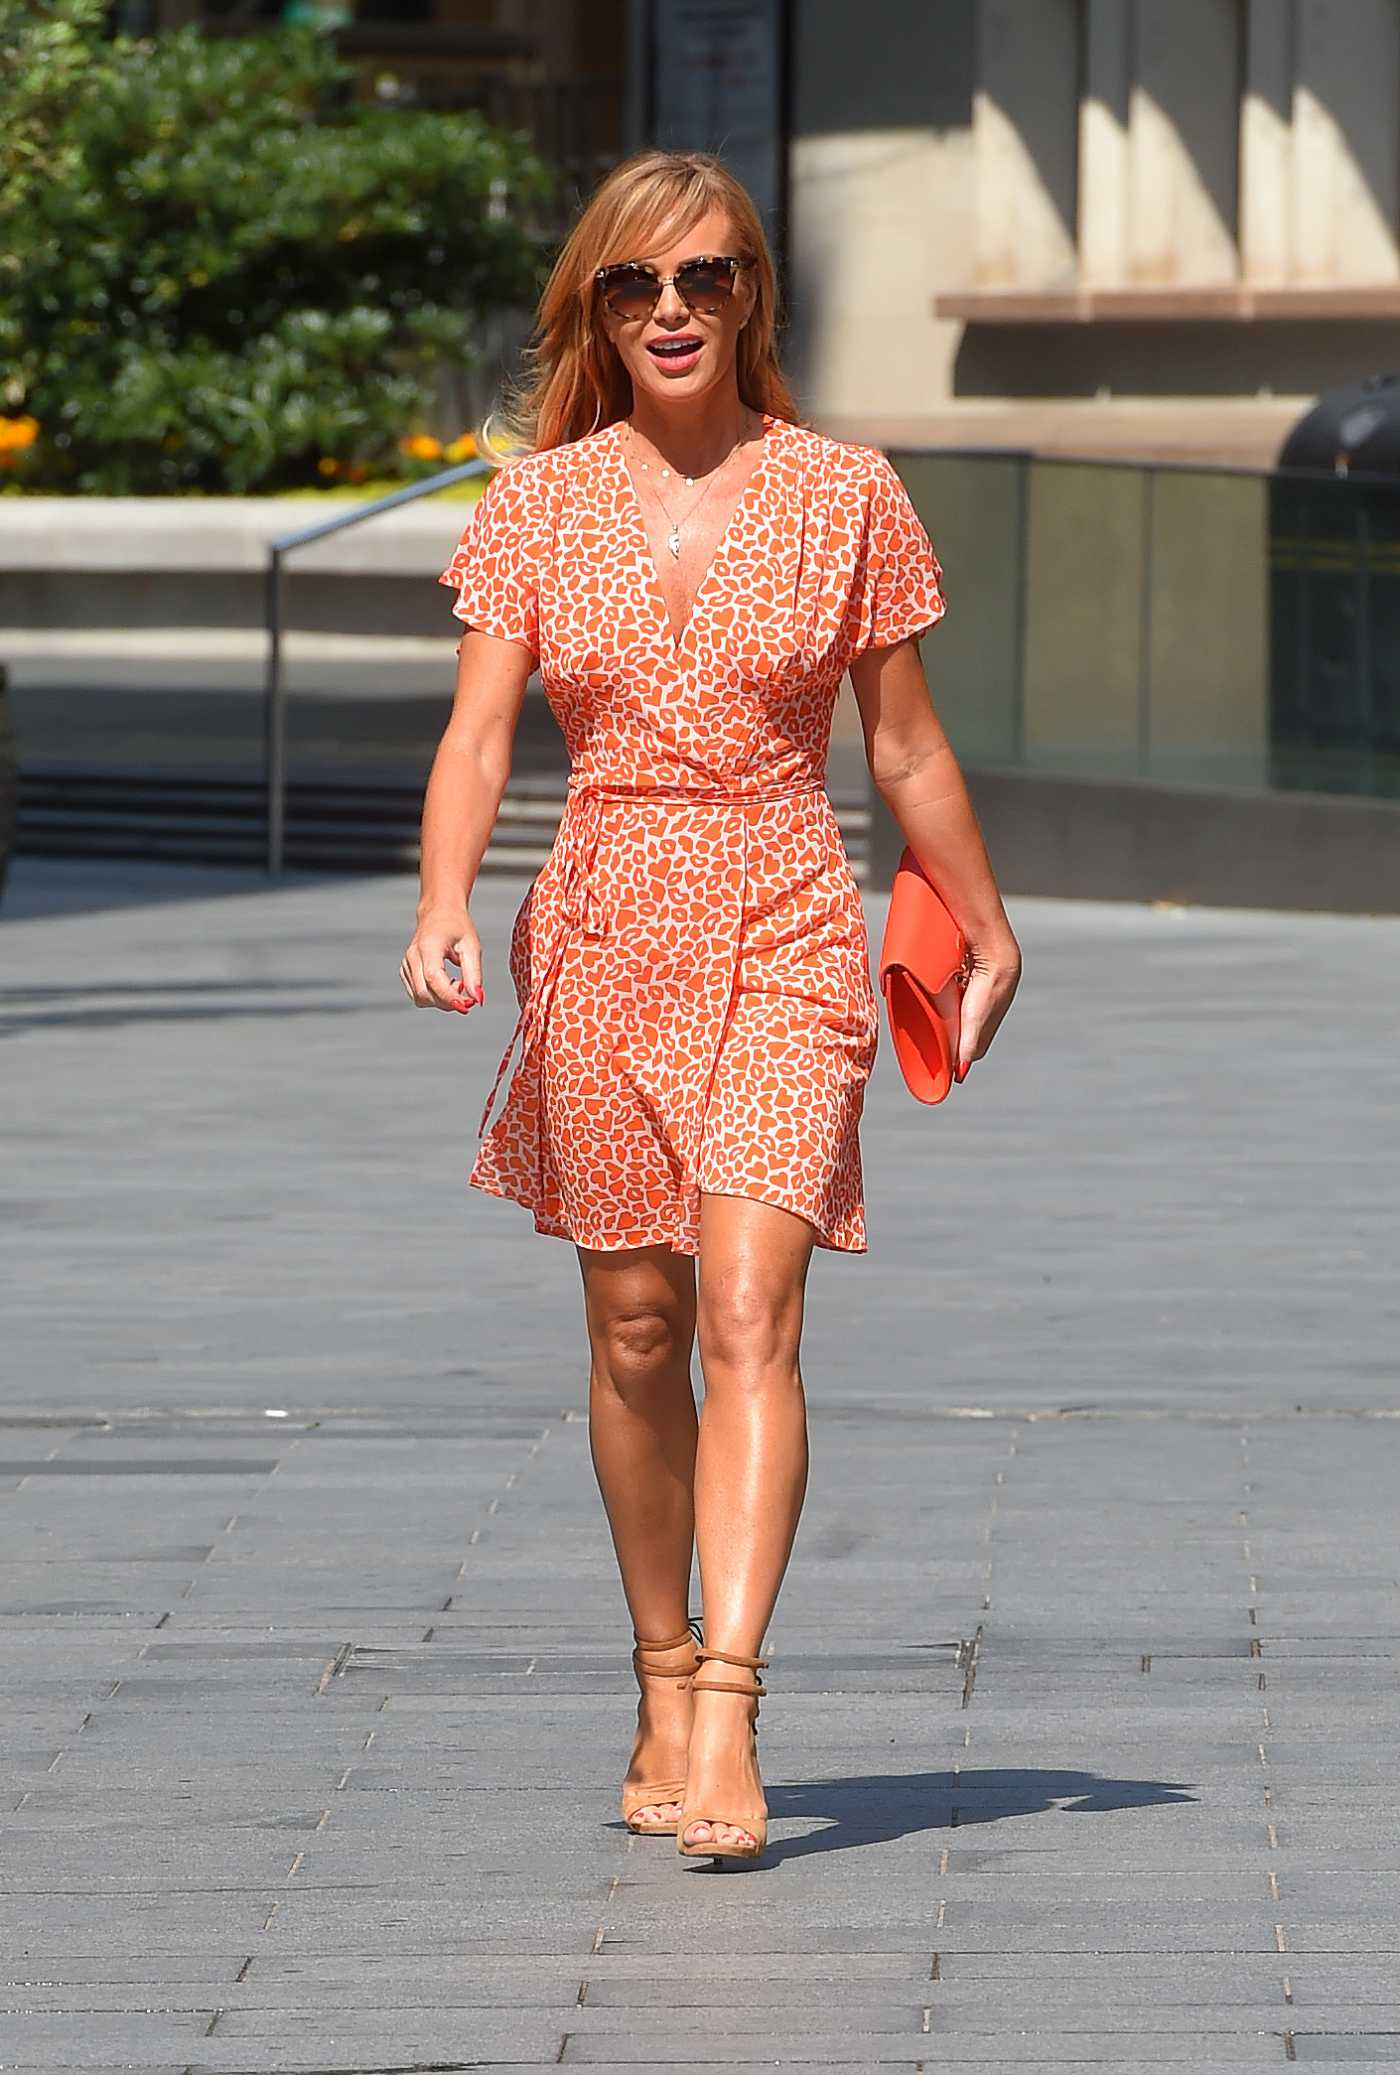 Amanda Holden in an Orange Animal Print Mini Dress Exits the Heart Radio in  in London 06/24/2020